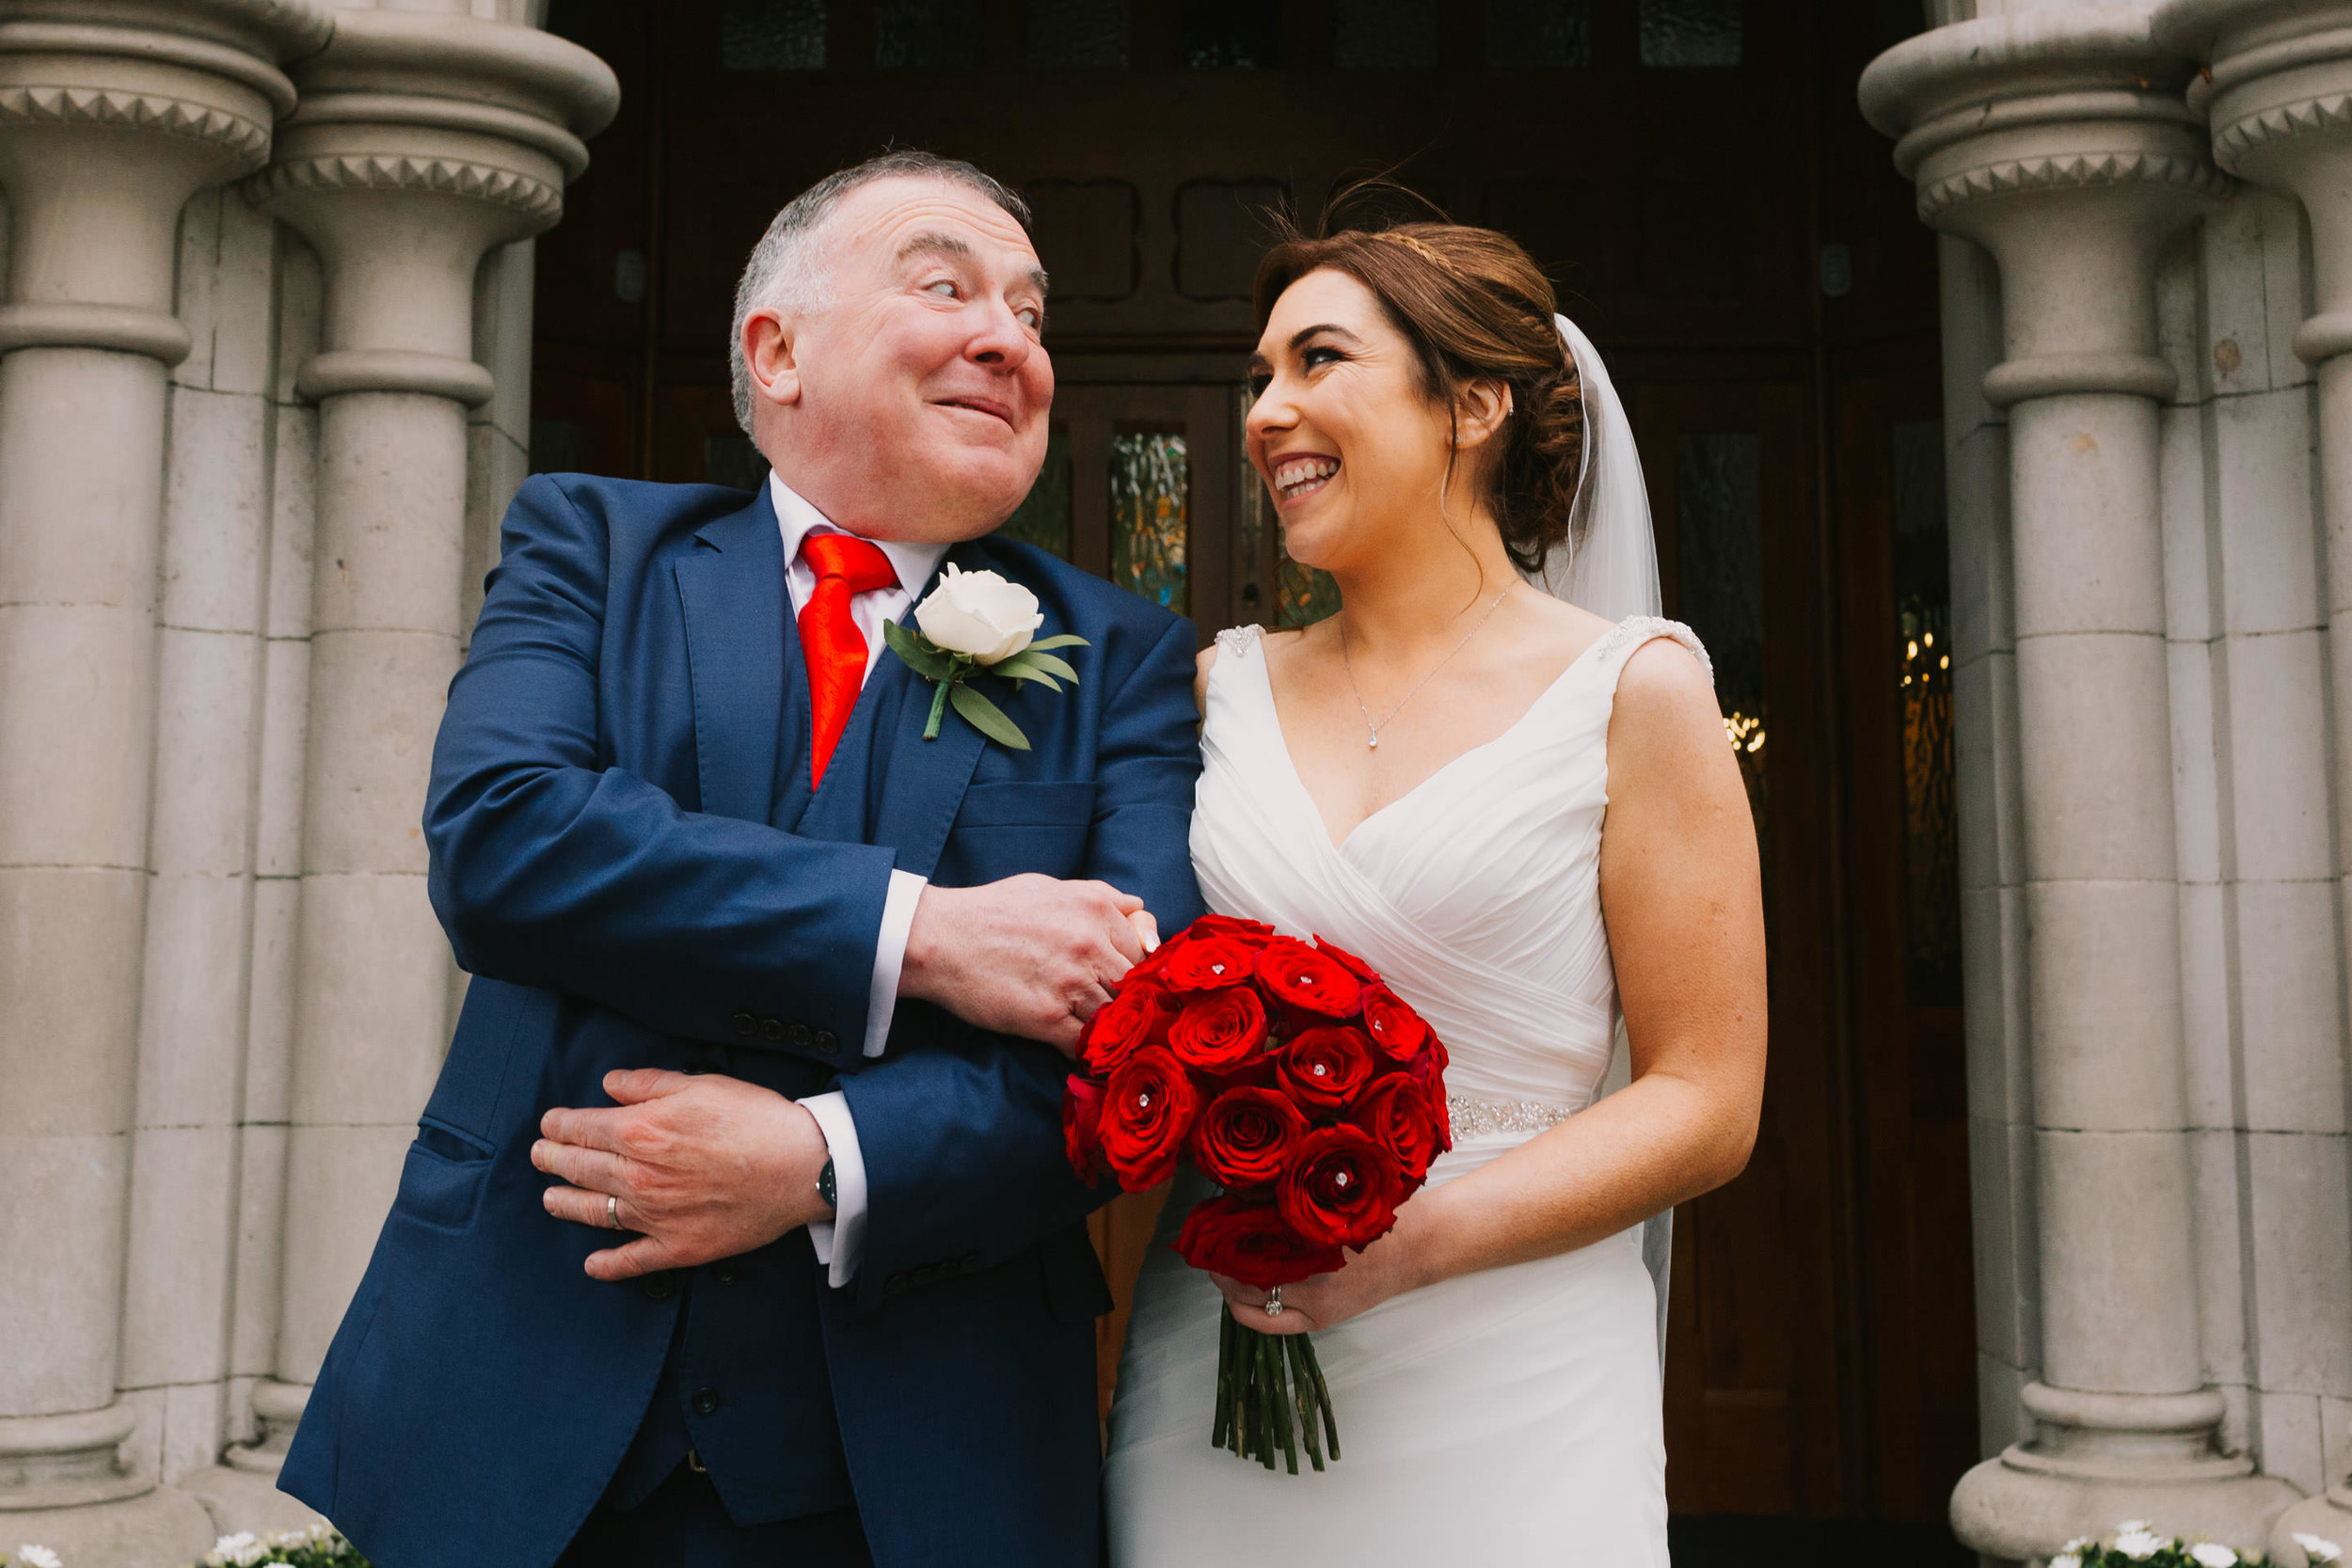 Barberstown_Castle_Wedding_Photographer_Livia_Figueiredo_386.jpg